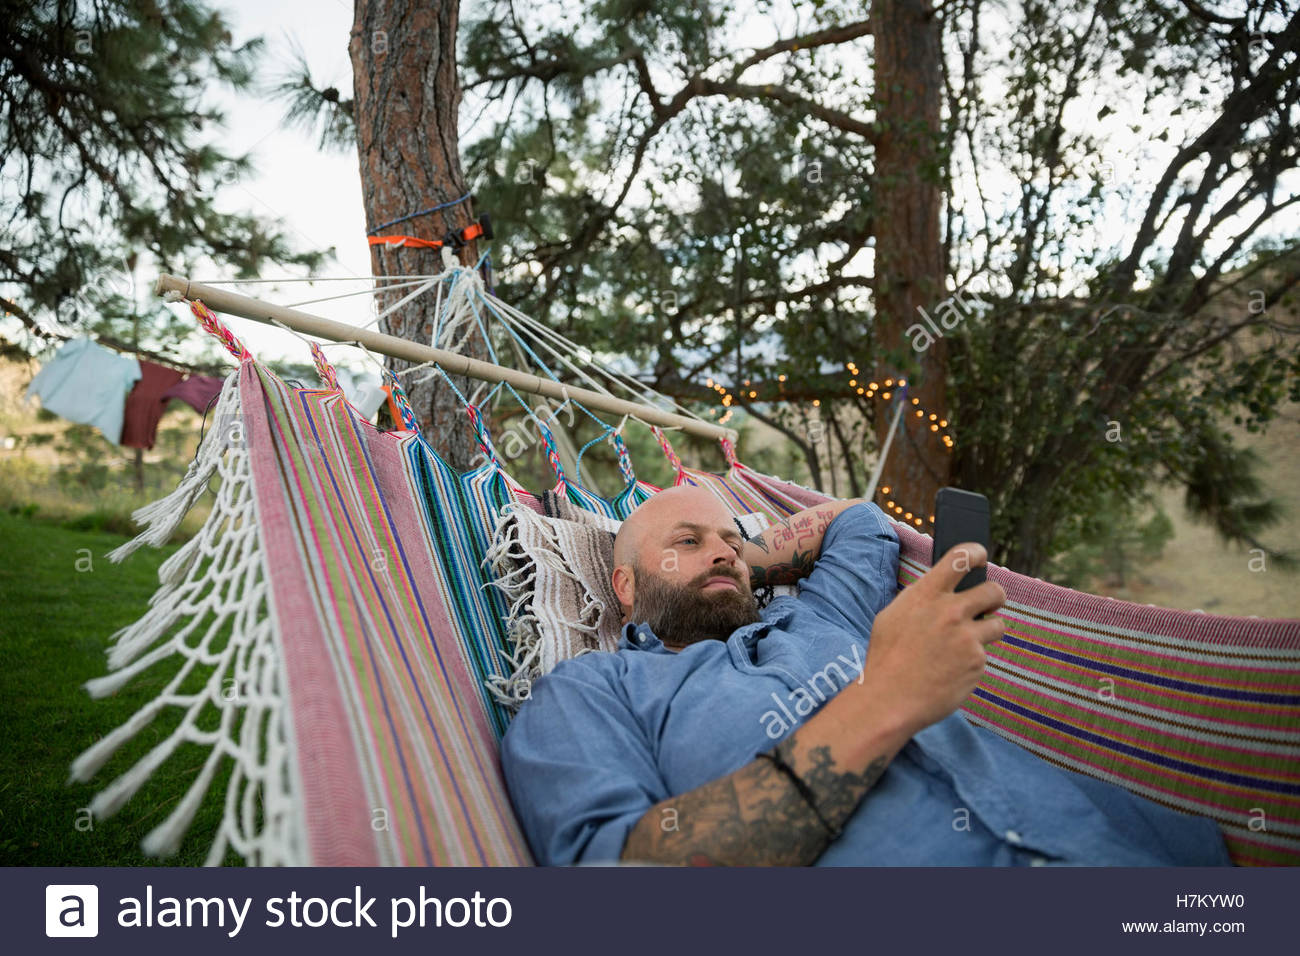 Man in hammock texting with cell phone - Stock Image